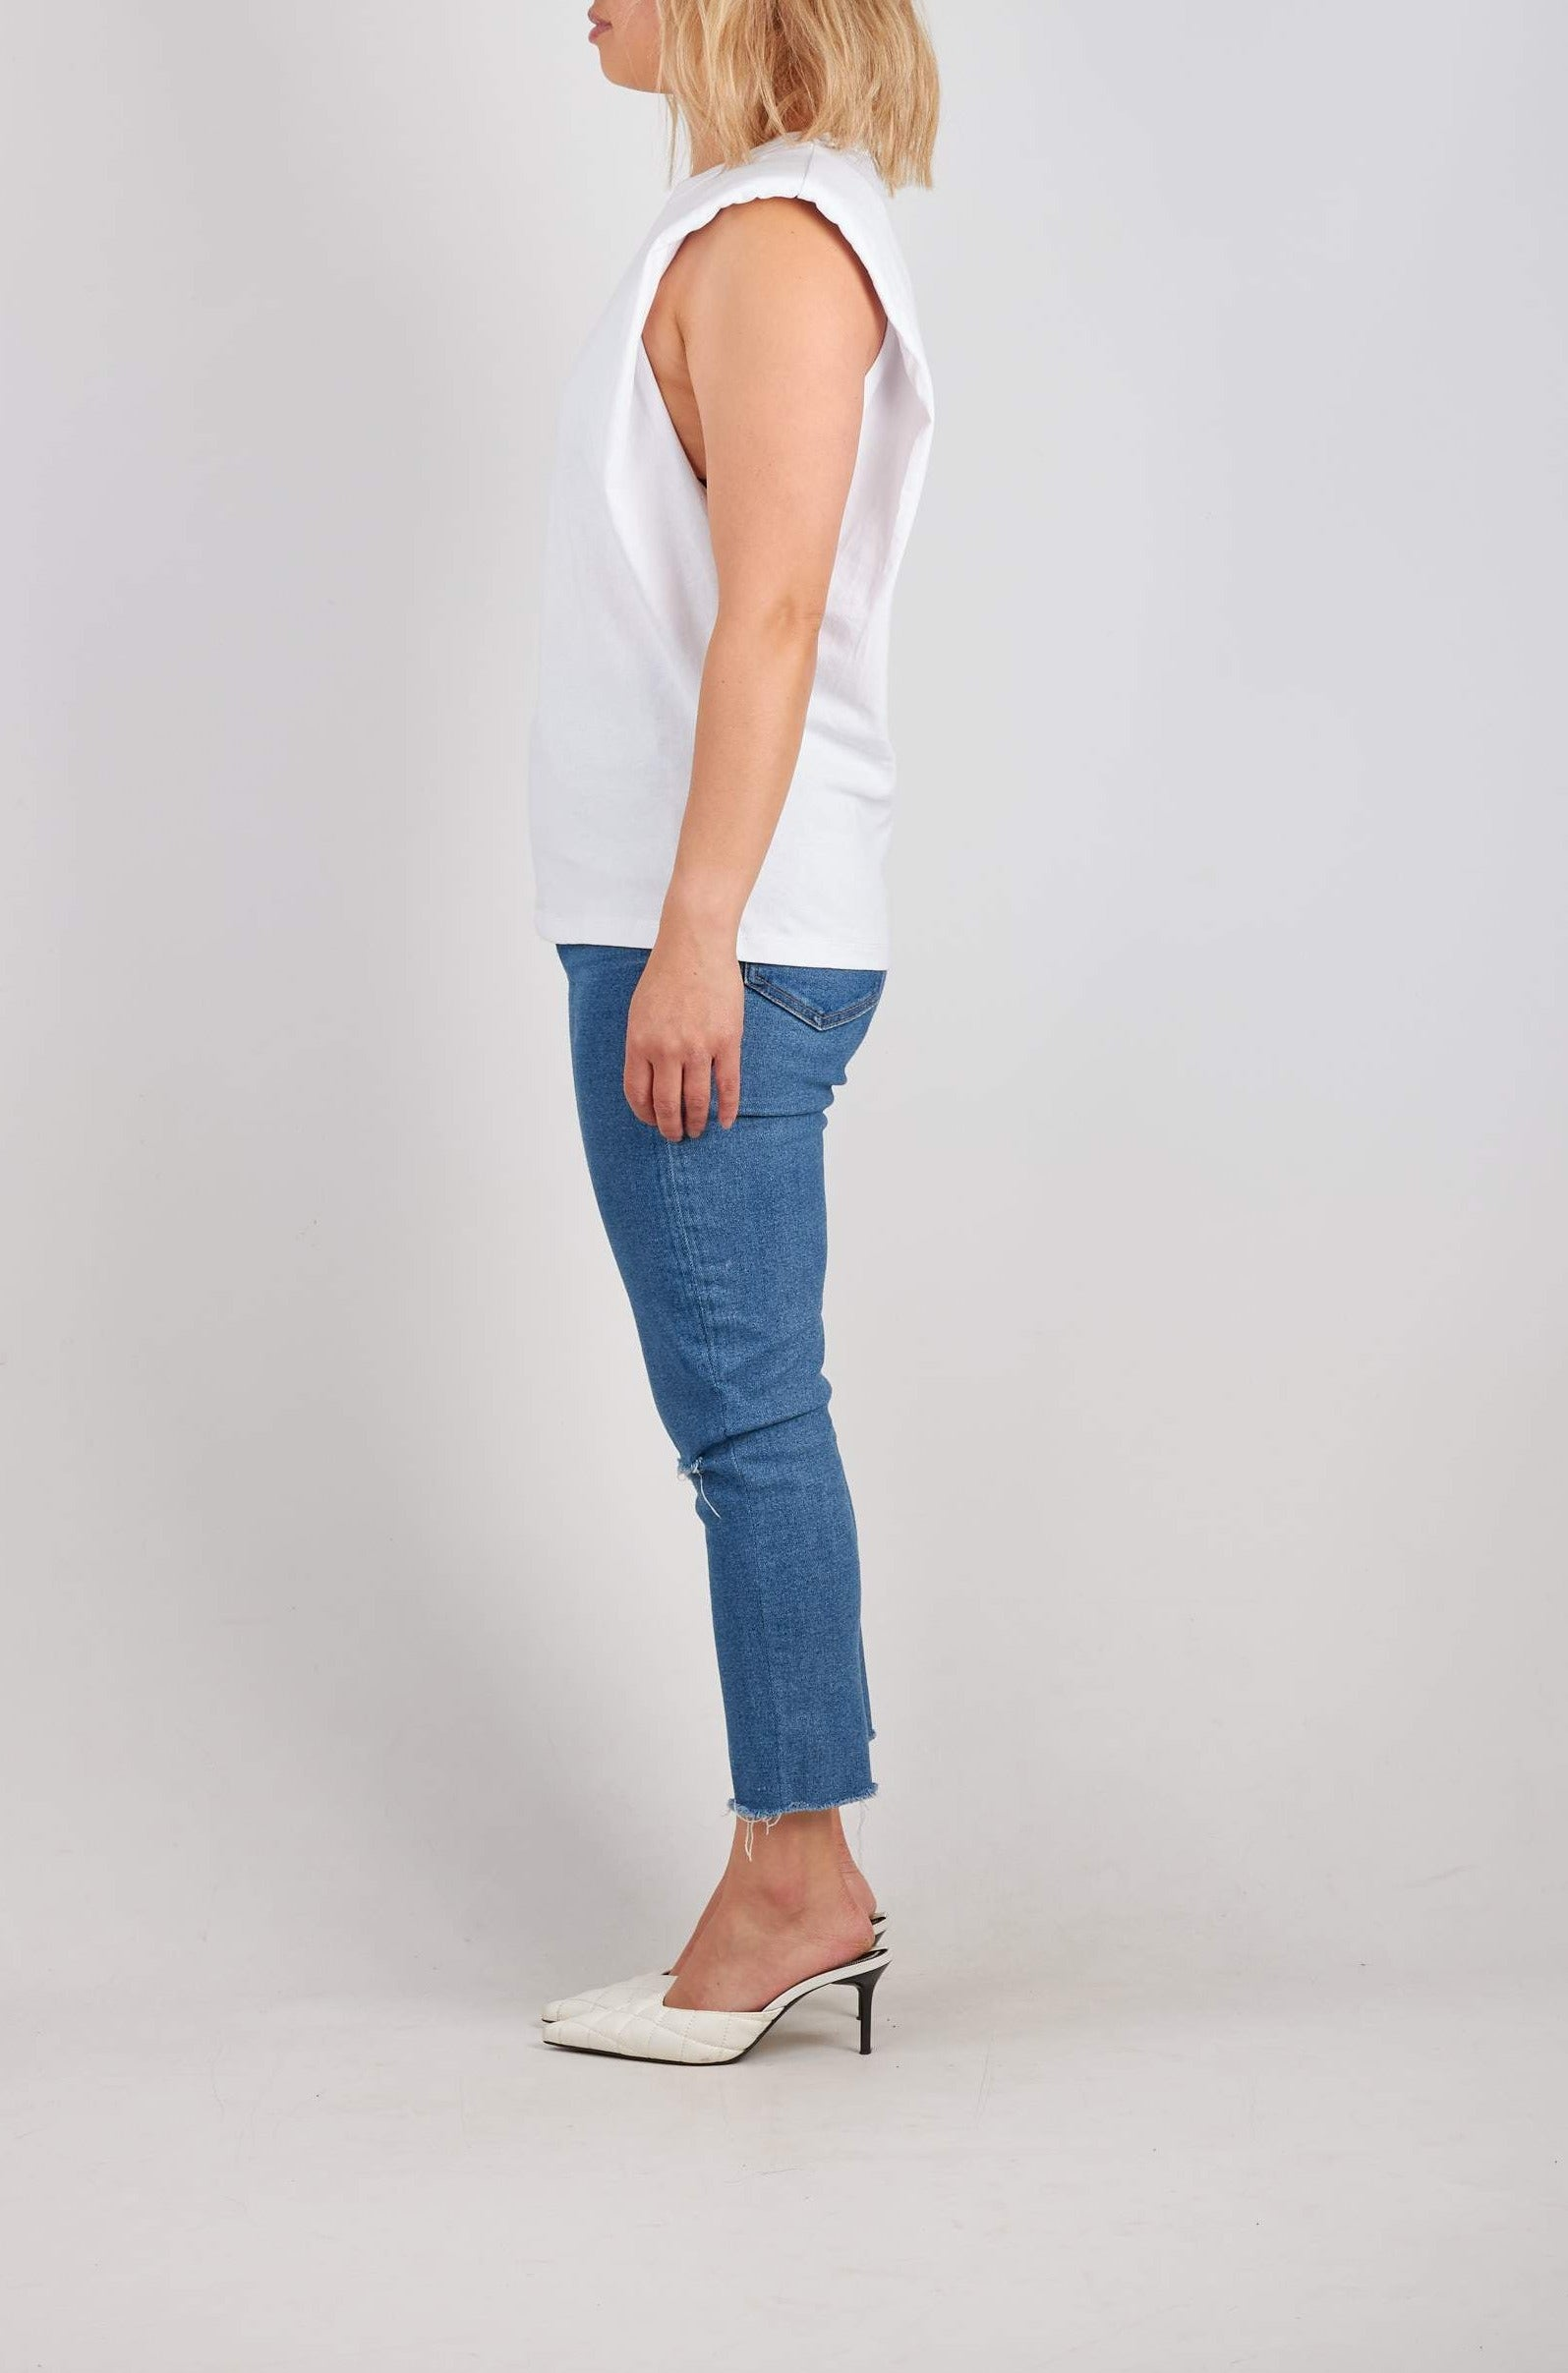 Padded shoulder sleeveless t-shirt in beige. Also available in Beige & Black.